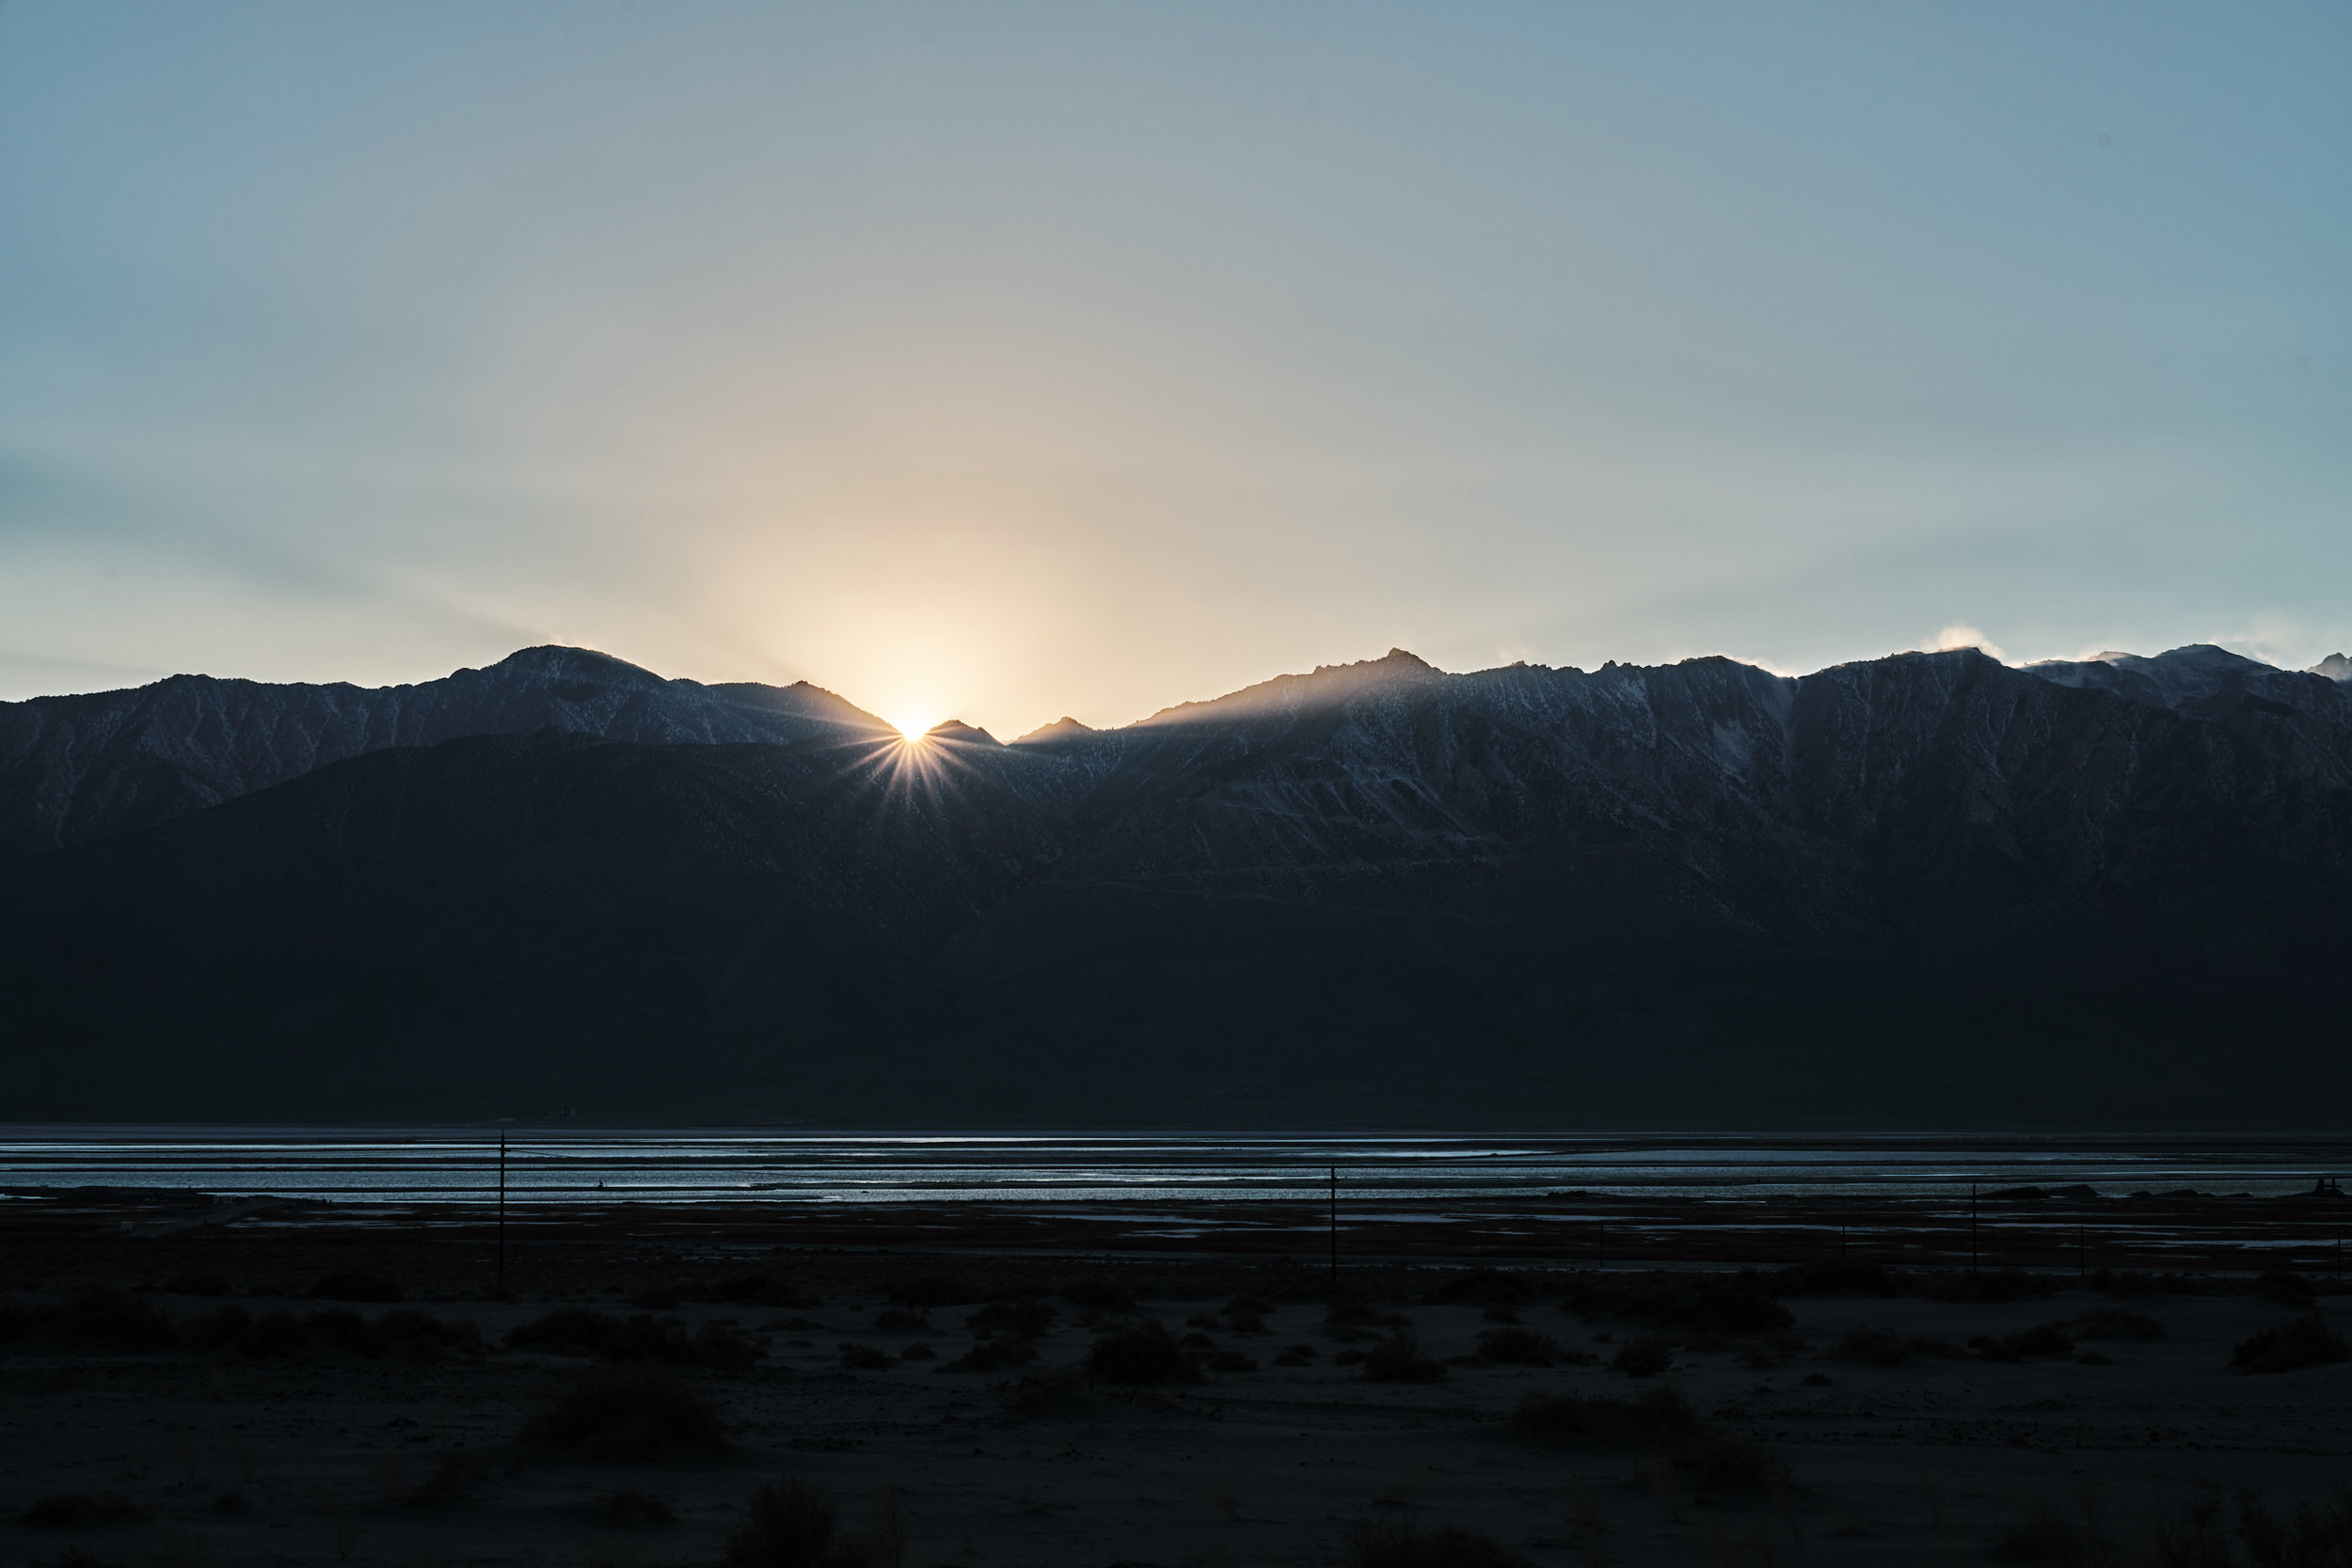 We were literally chasing the sun's rays as they moved over to the mountains...